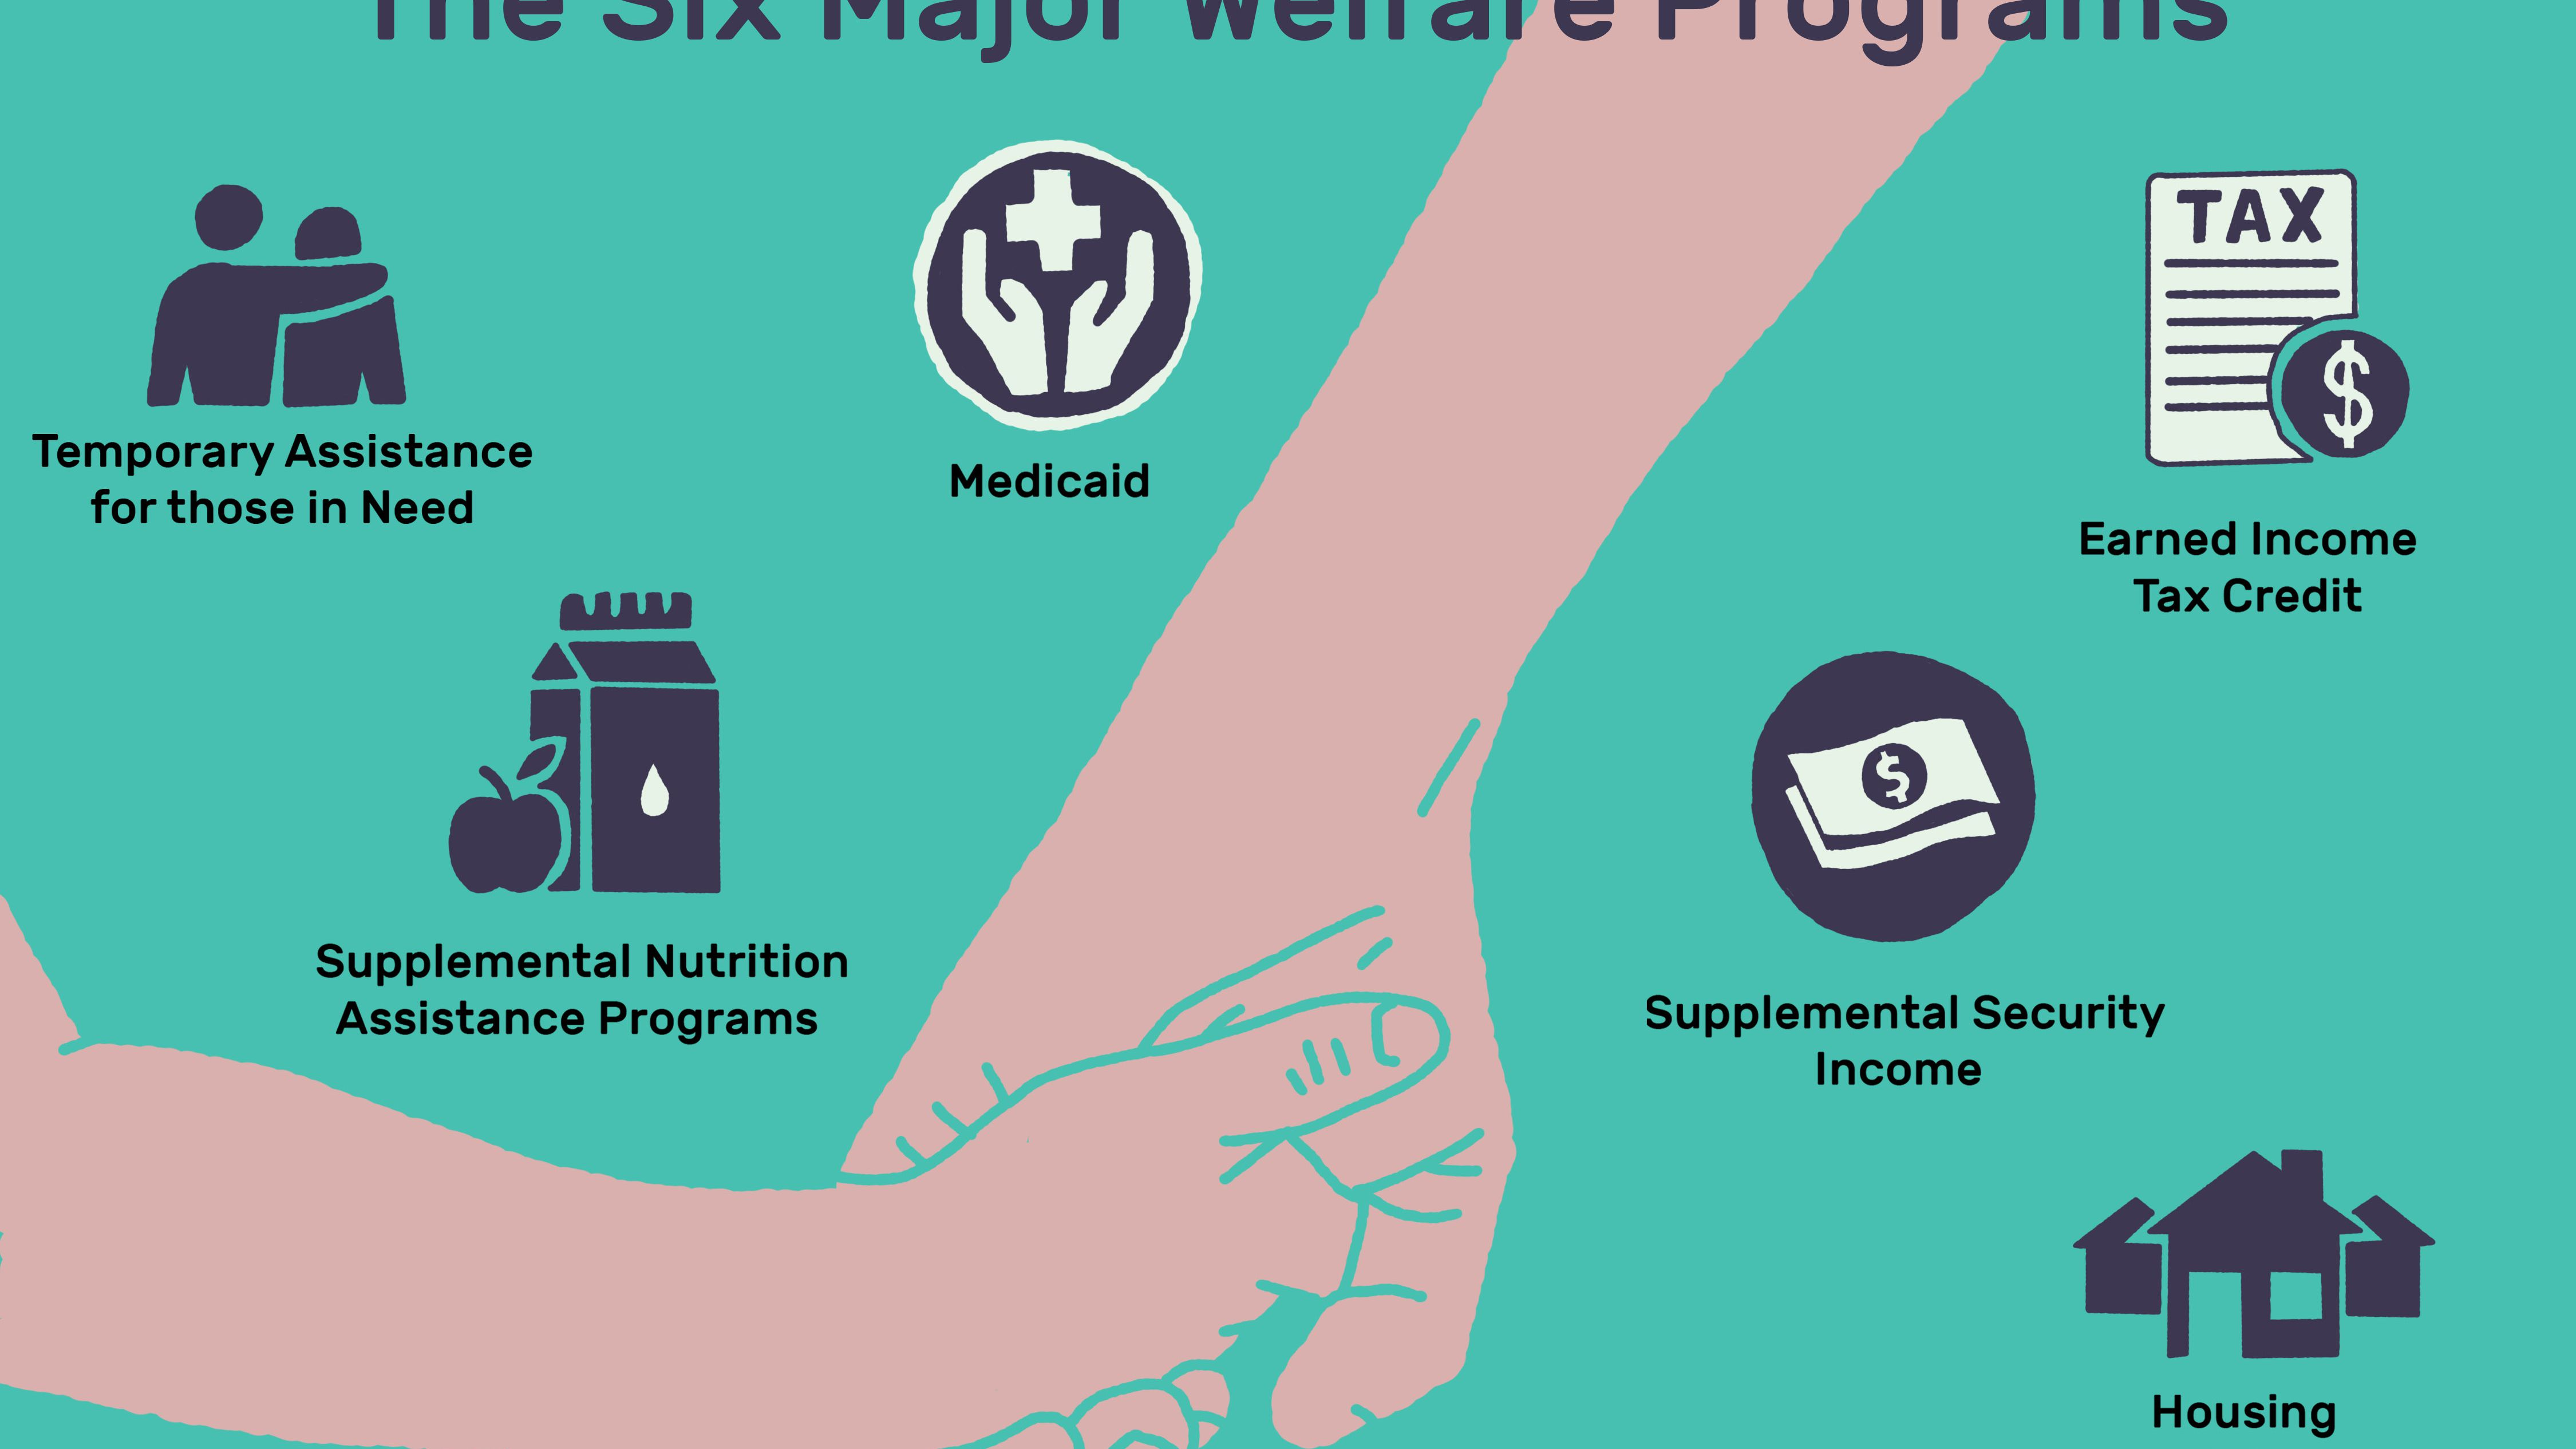 Welfare Programs Definition List Myths Vs Facts